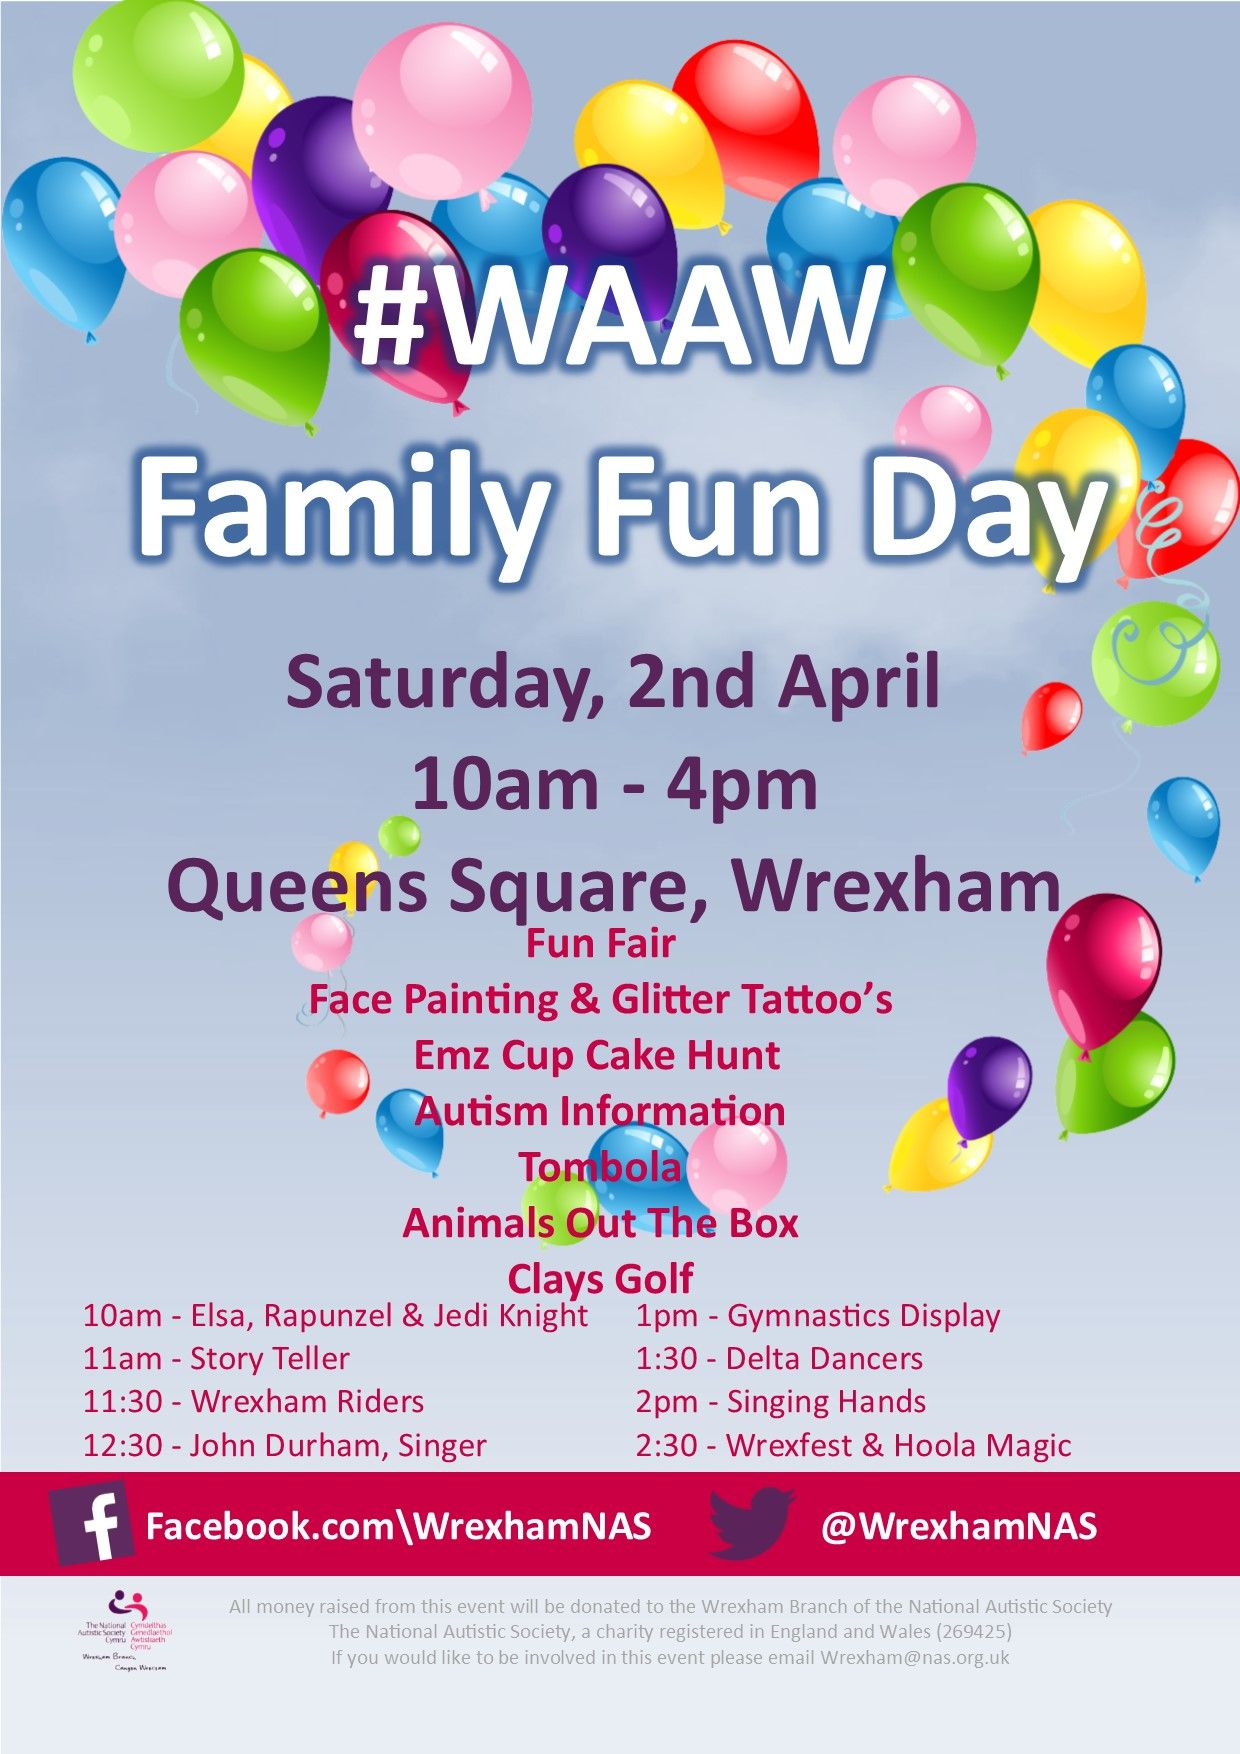 Fun Day for WAAW from Wrexham NAS EventsnWales The Wrexham